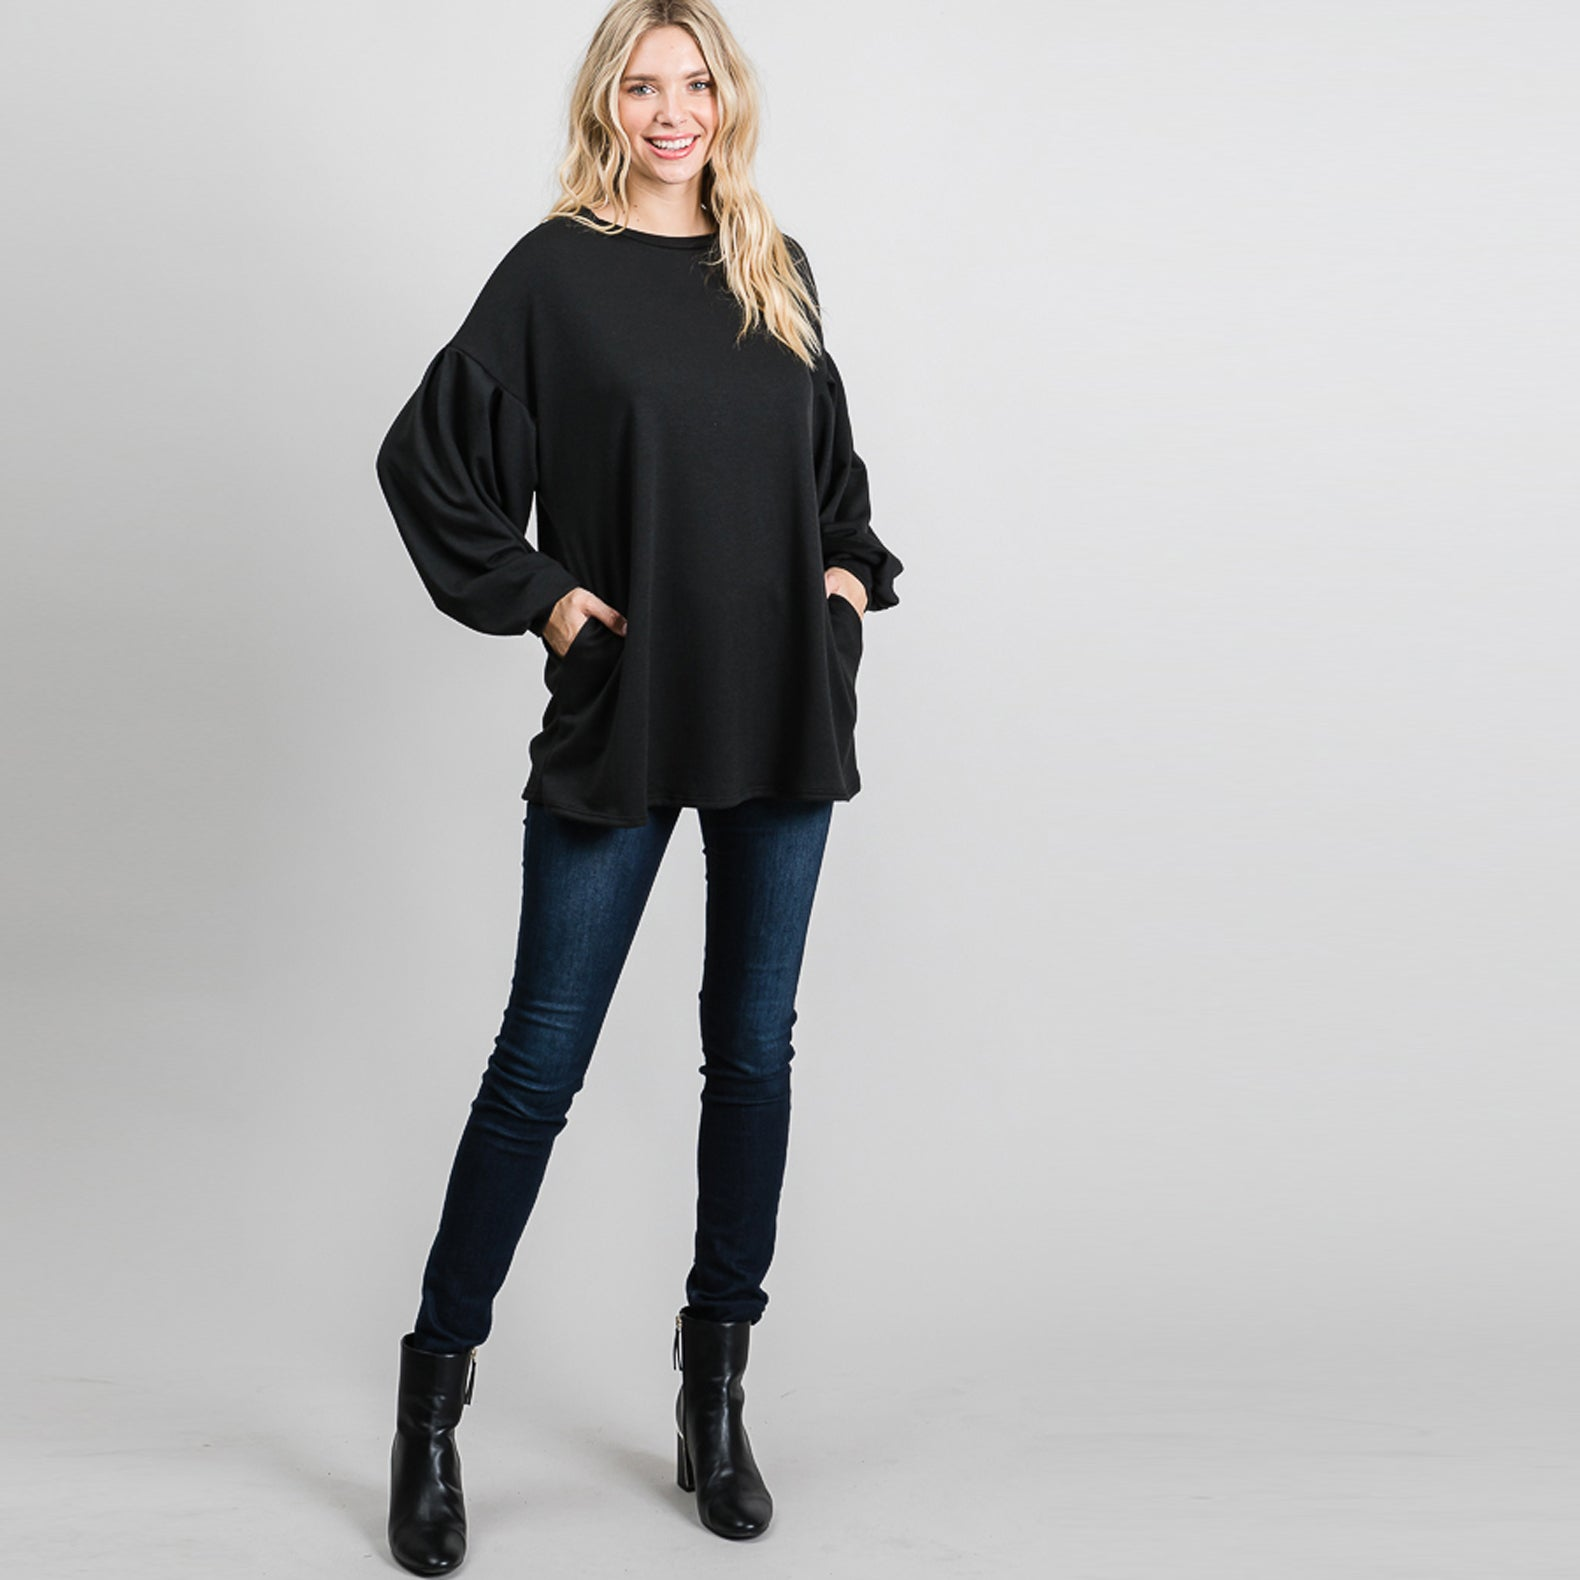 Myriad Bubble Sleeve Sweater Top